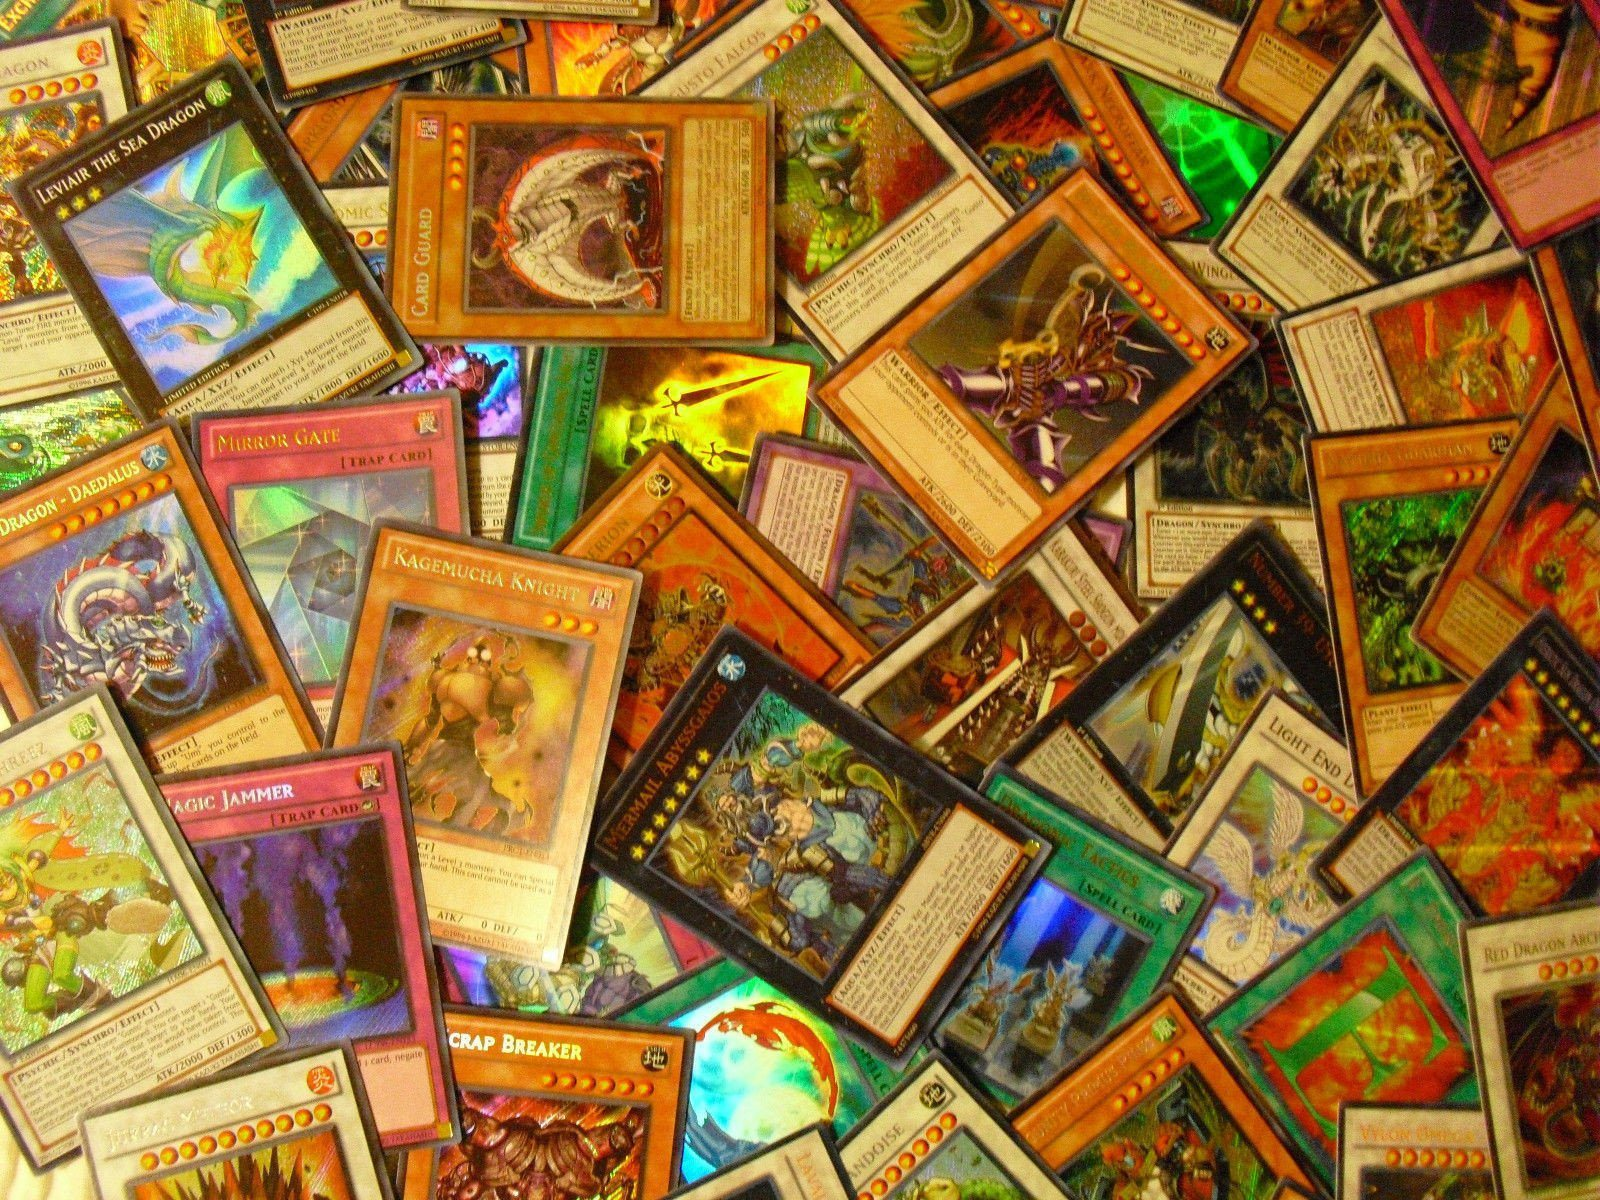 Yu-Gi-Oh! - *100* Yu-Gi-Oh! Mixed Cards Lot With Rares & Holofoil Mint Collection **50% OFF**